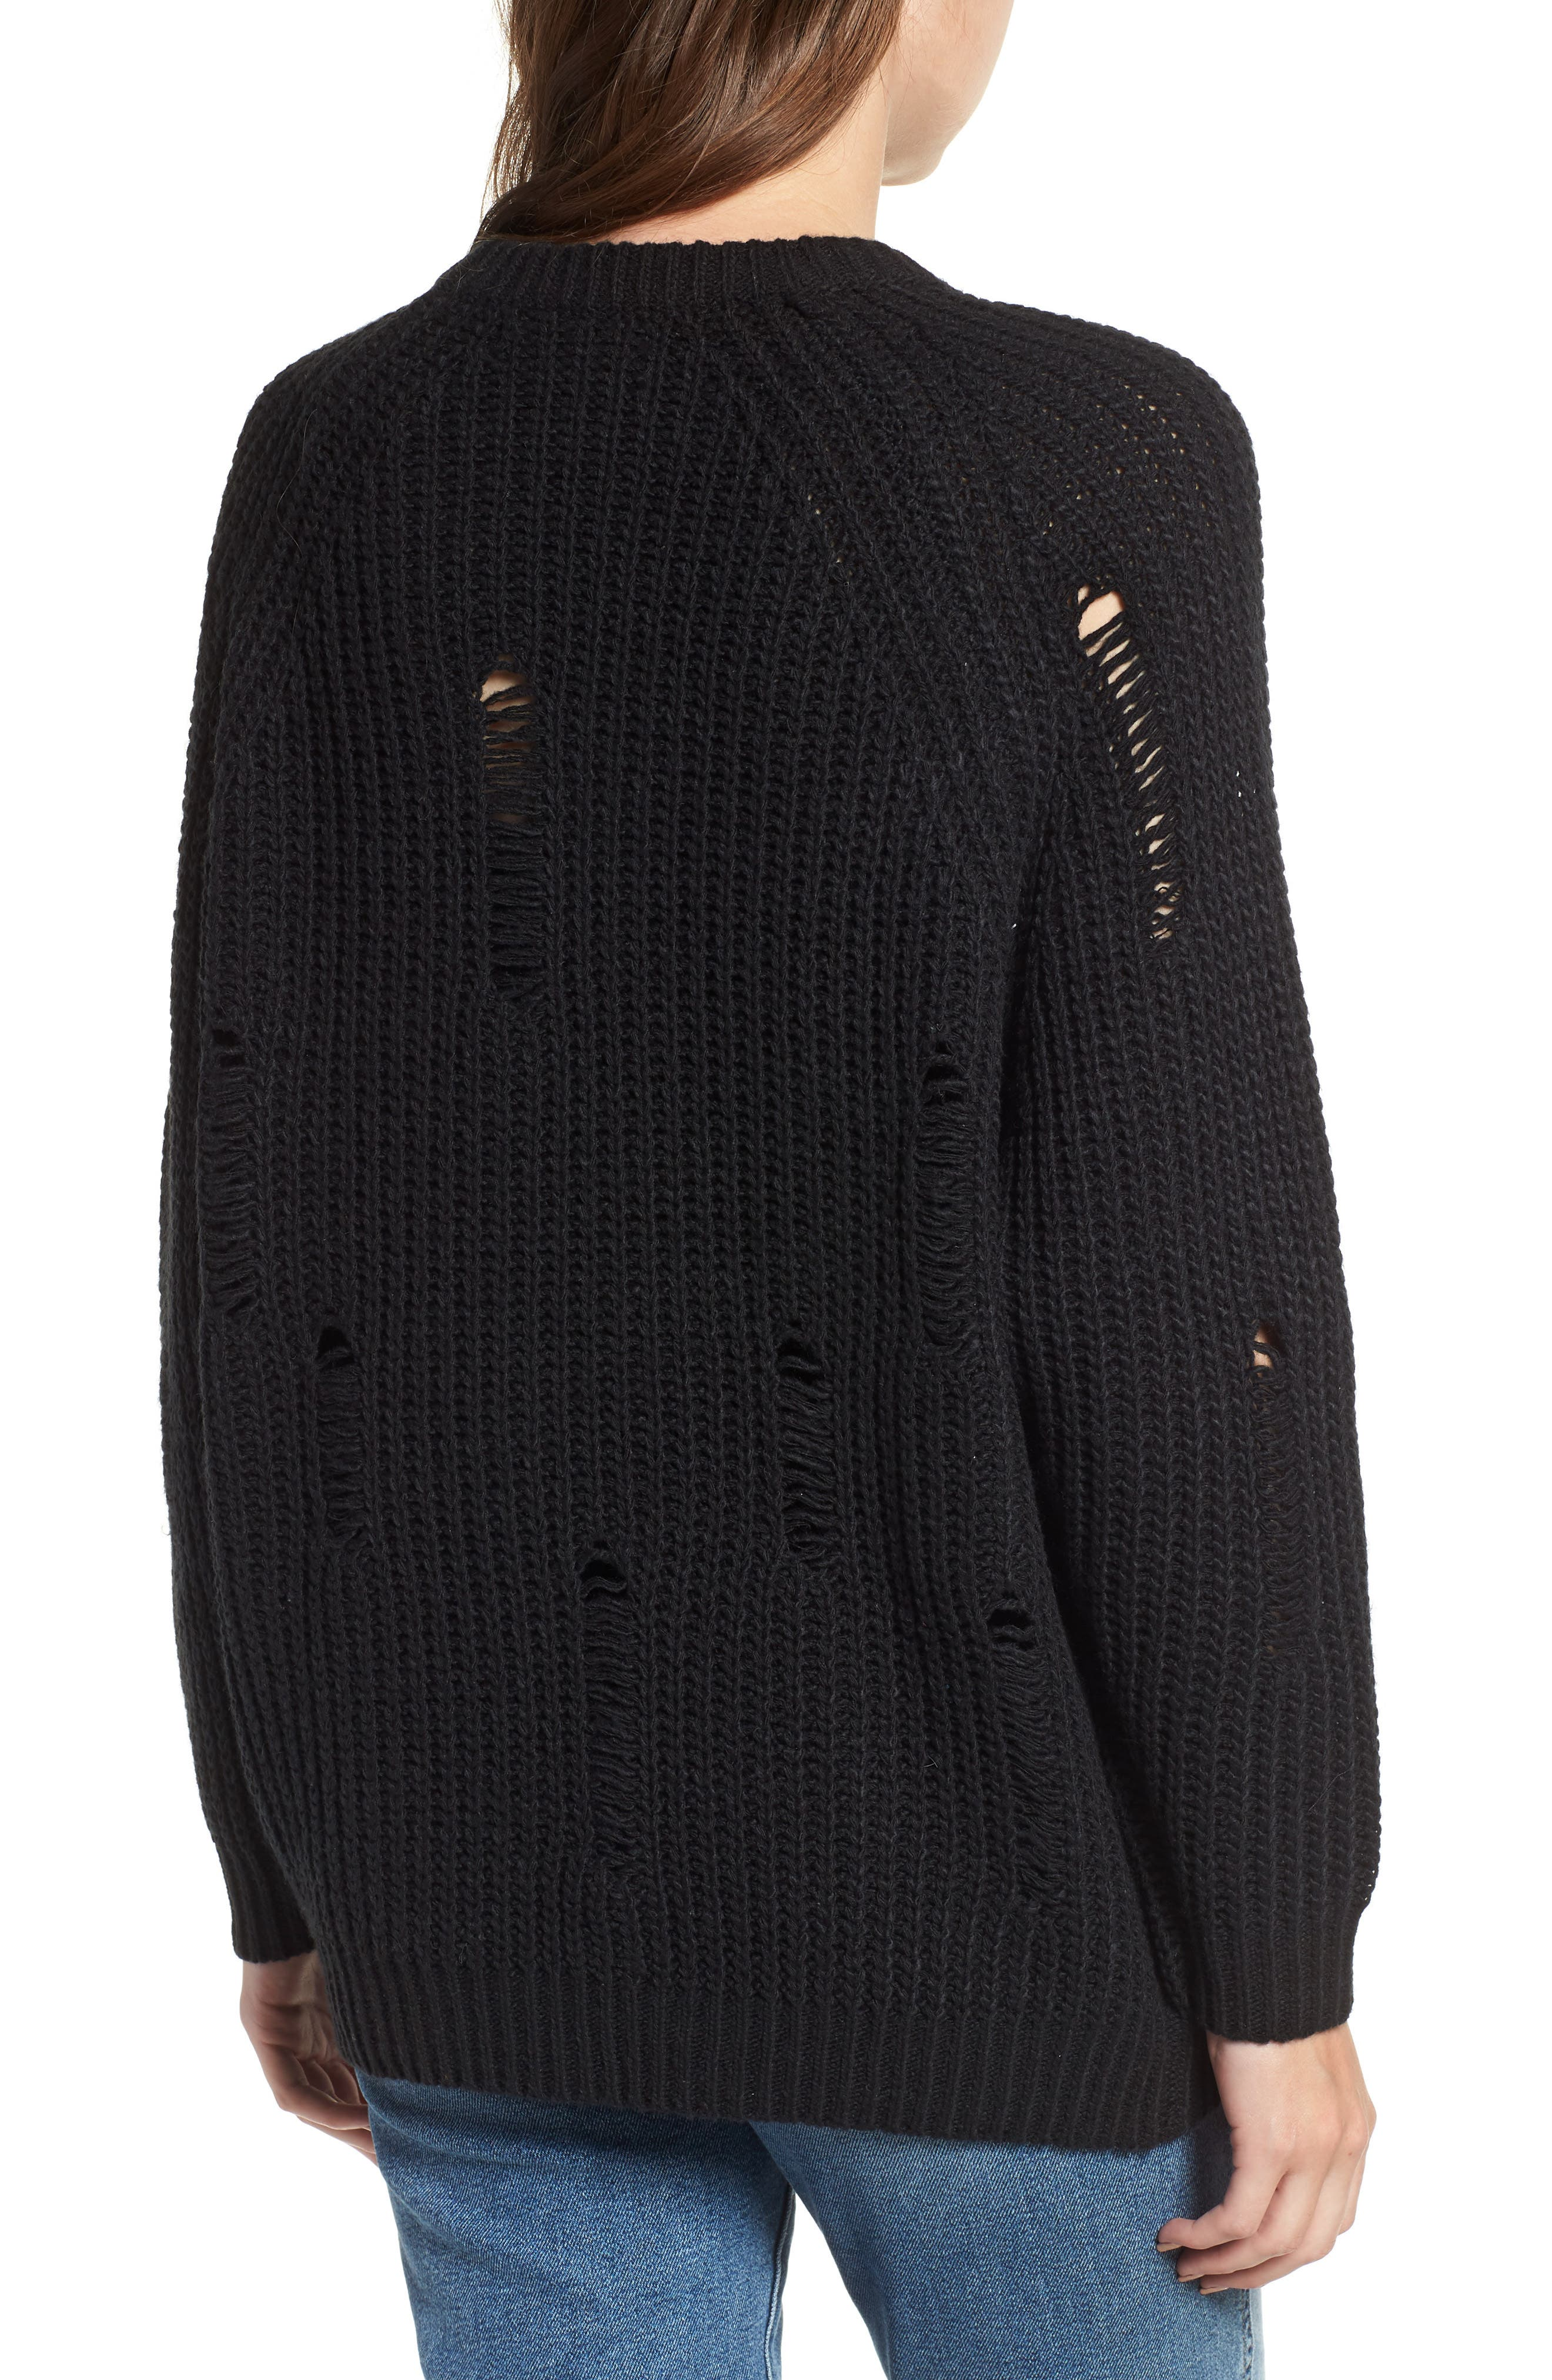 Bishop + Young Simone Distressed Shaker Sweater,                             Alternate thumbnail 2, color,                             BLACK